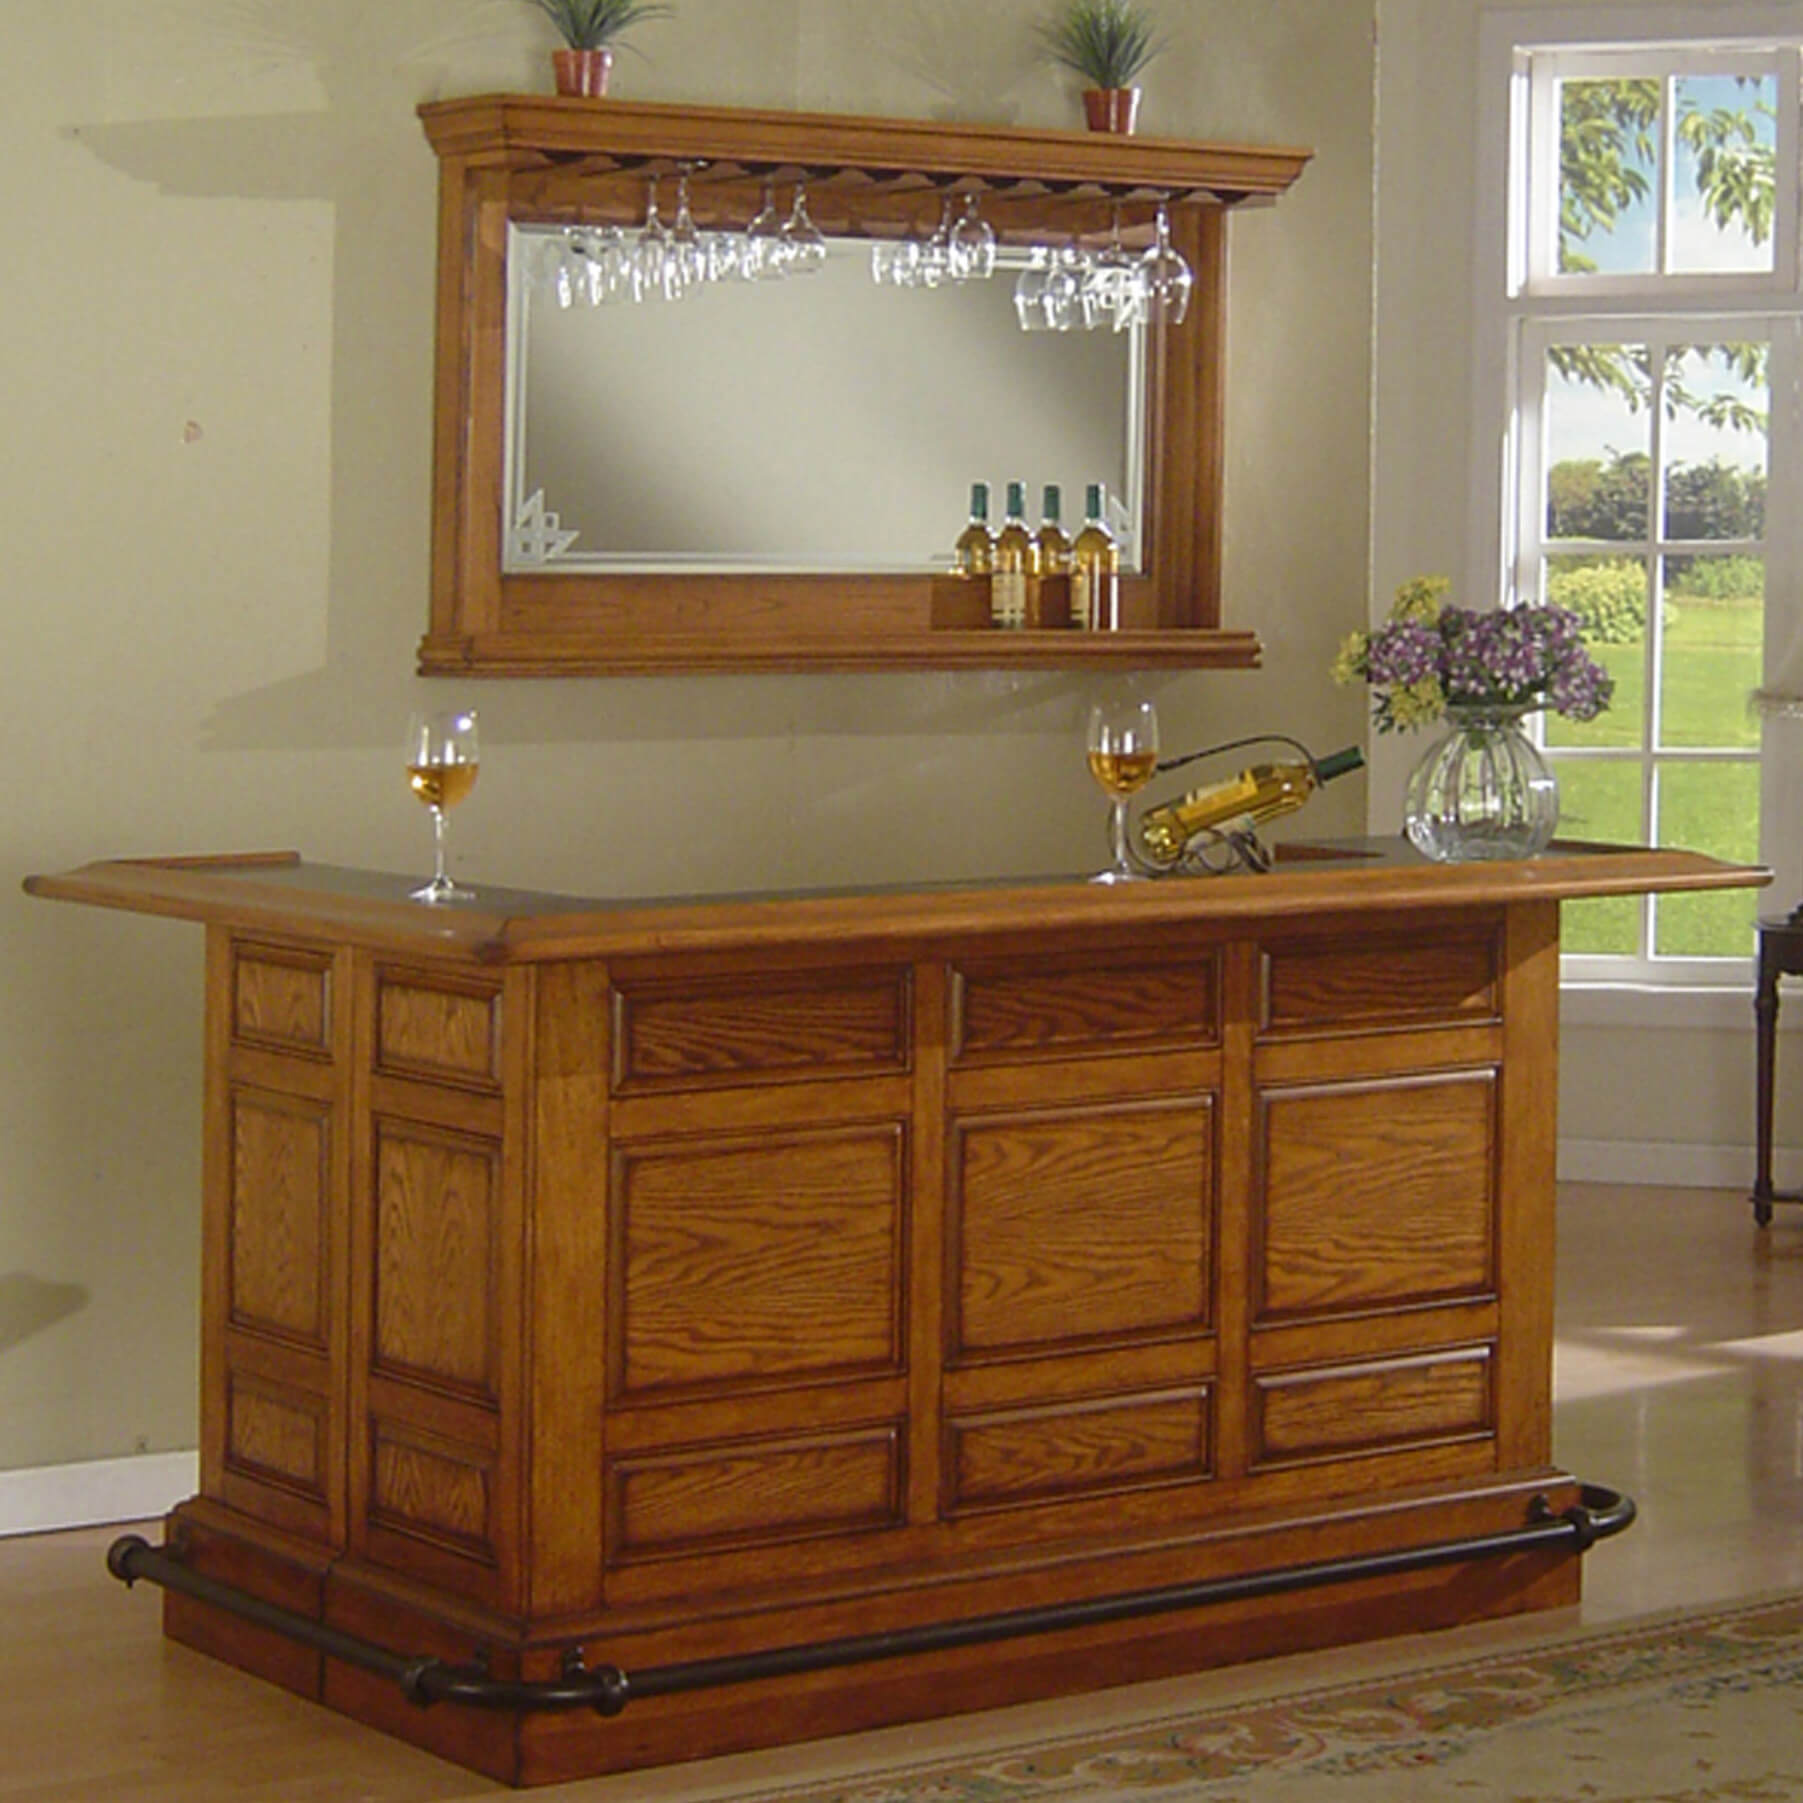 Solid wood home bar with wrap around counter